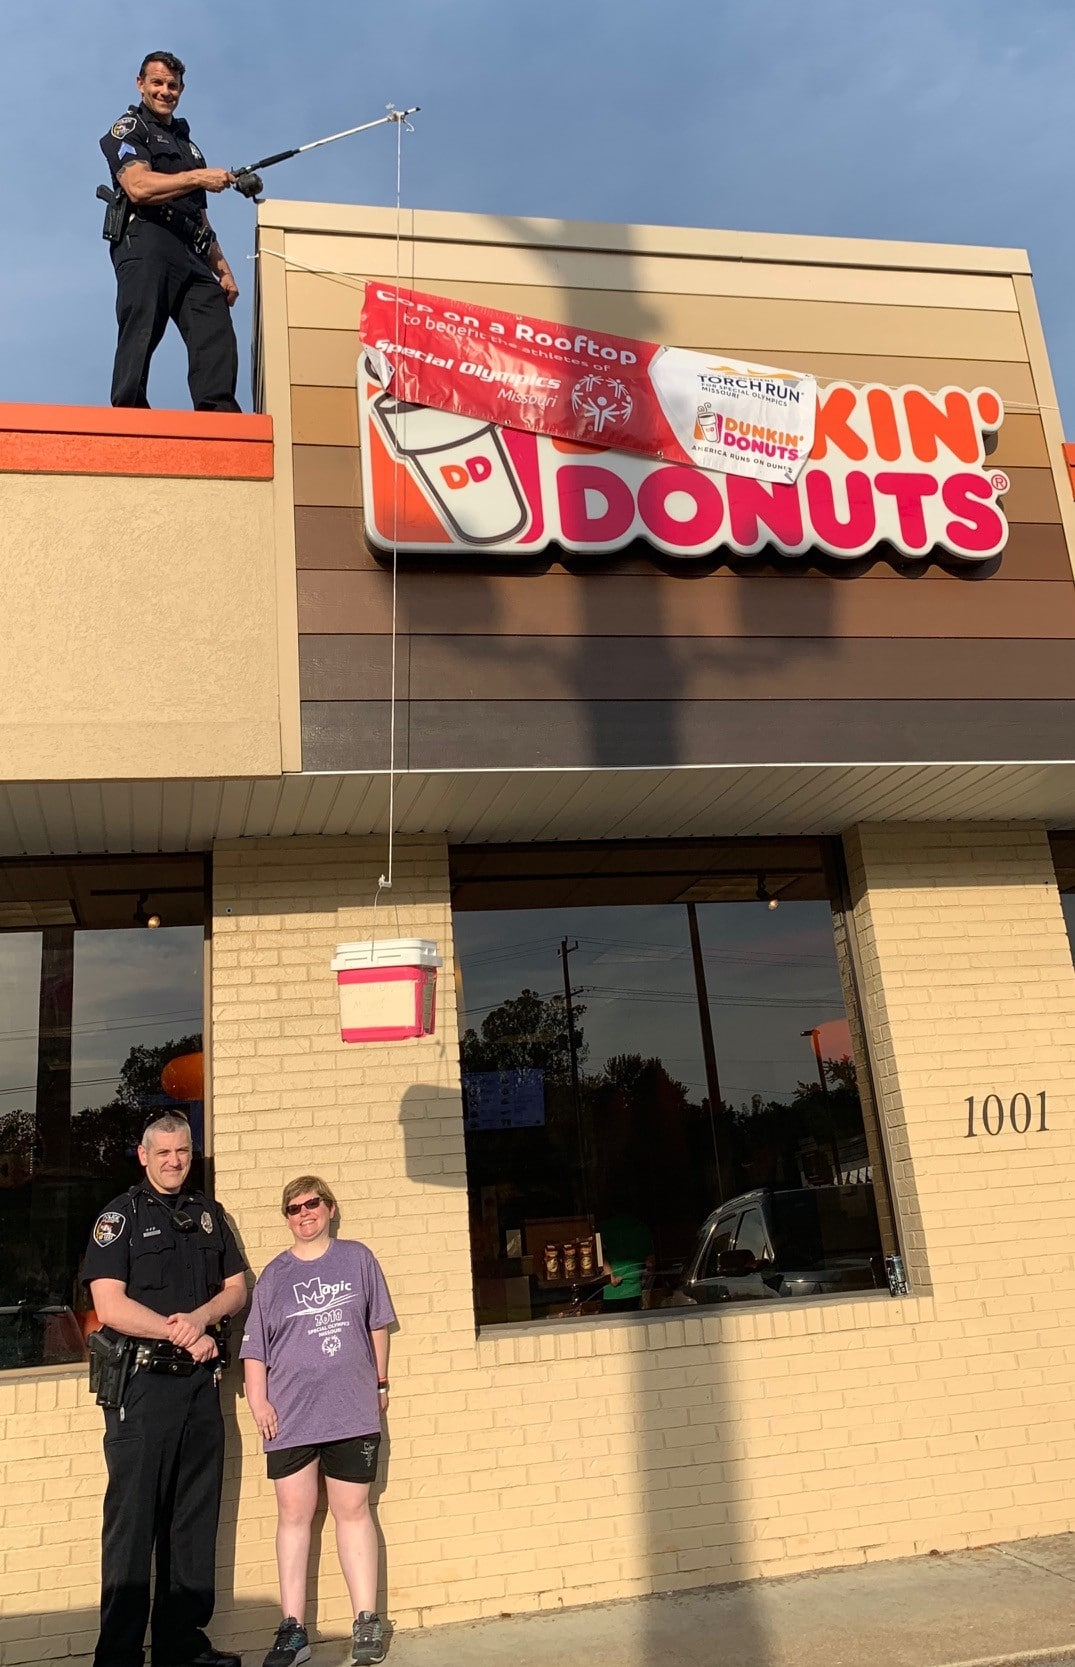 A law enforcement officer stands on the roof of a Dunkin' Donuts holding a tip jug on a fishing line